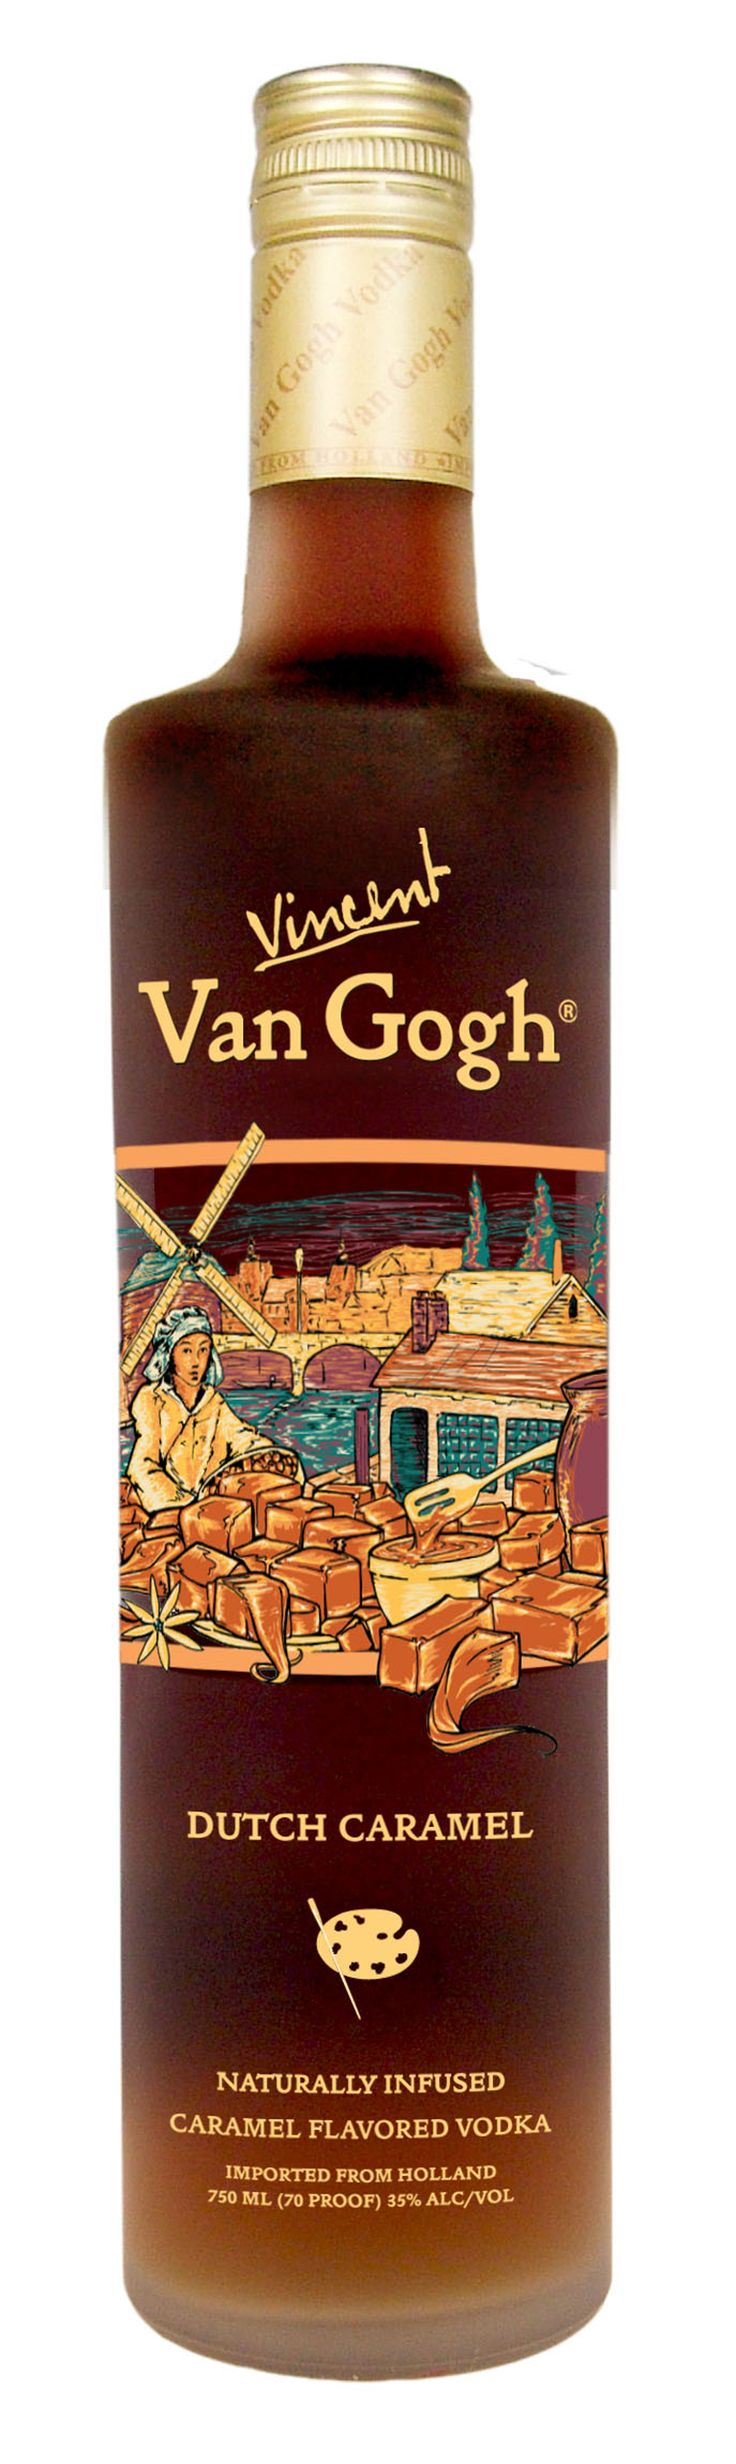 54 best Van Gogh Dutch Caramel Vodka images on Pinterest | Caramel ...